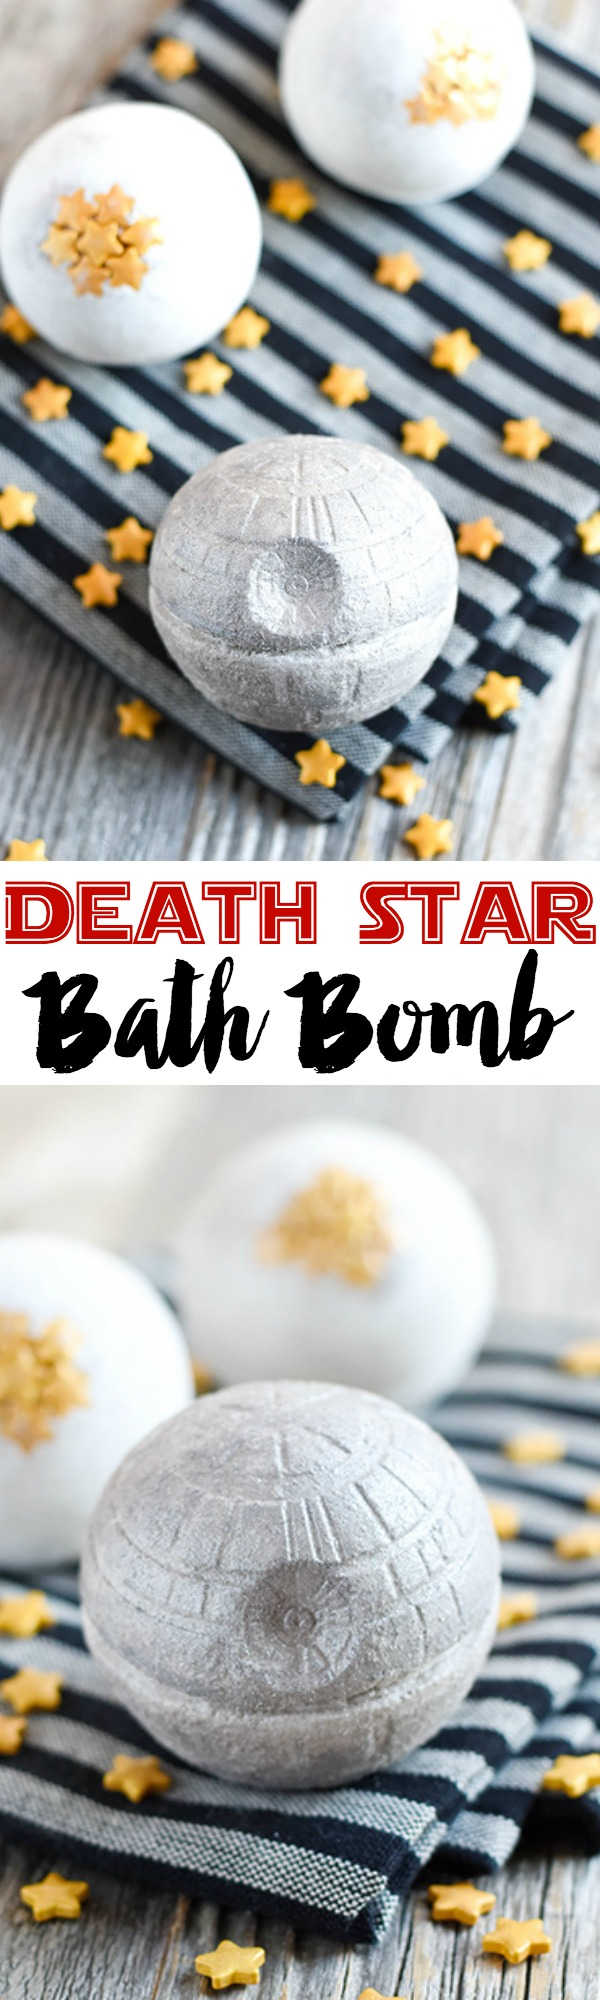 DIY Death Star Bath Bomb Tutorial - DIY Bath Bomb Recipes | Fun DIY Projects for Teens